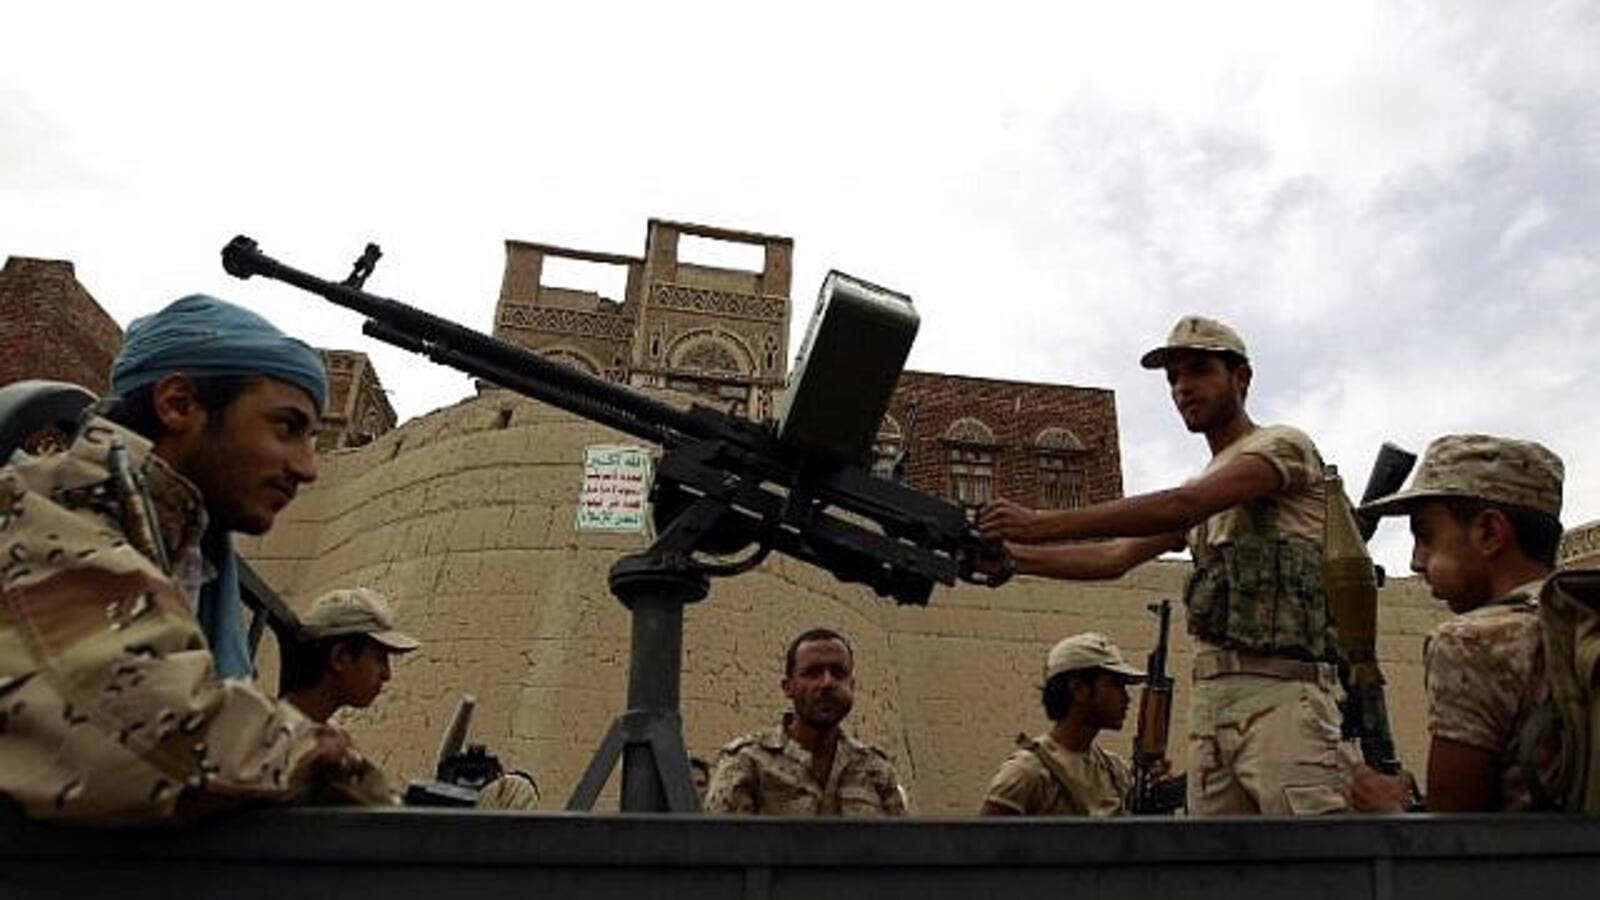 Armed Houthi rebels ride in the back of a truck during a rally in the capital Sanaa. (AFP/Mohammed Huwais)